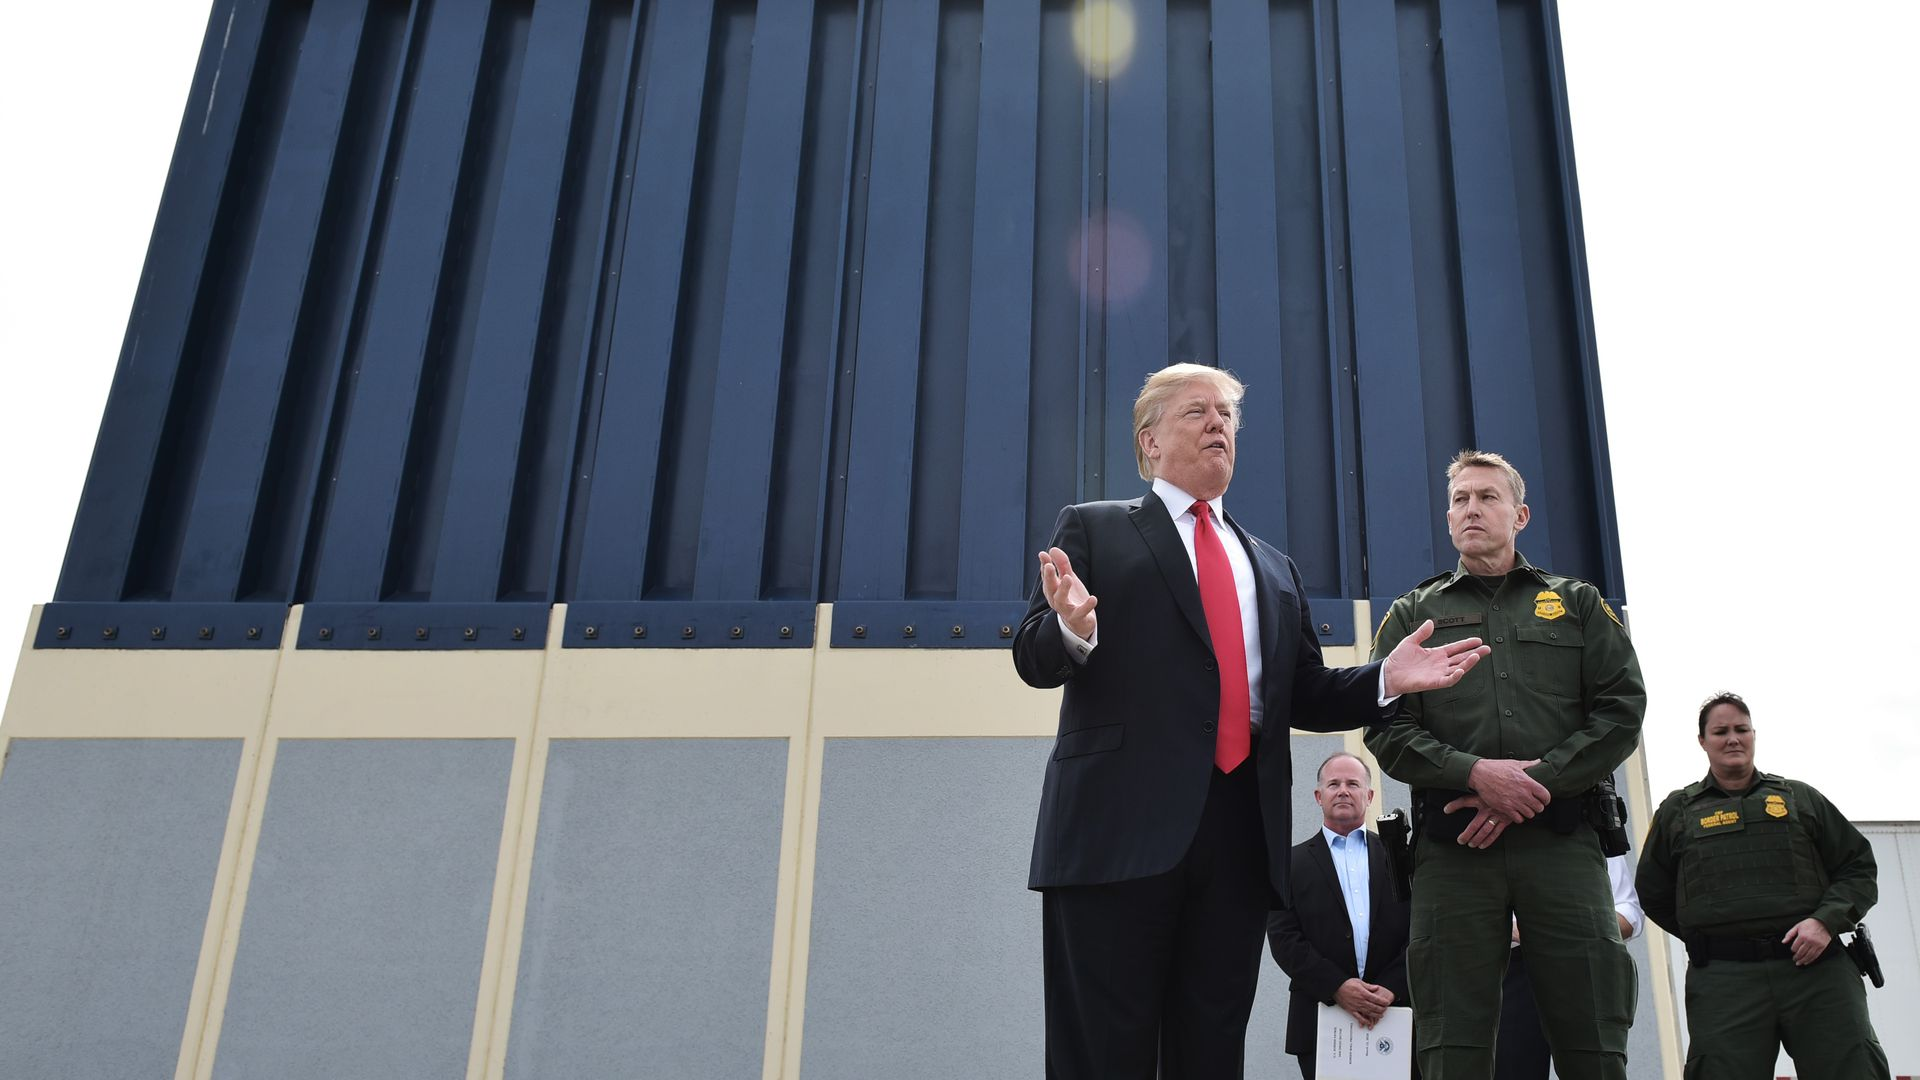 Trump stands in front of border wall prototype with law enforcement officers in green behind him